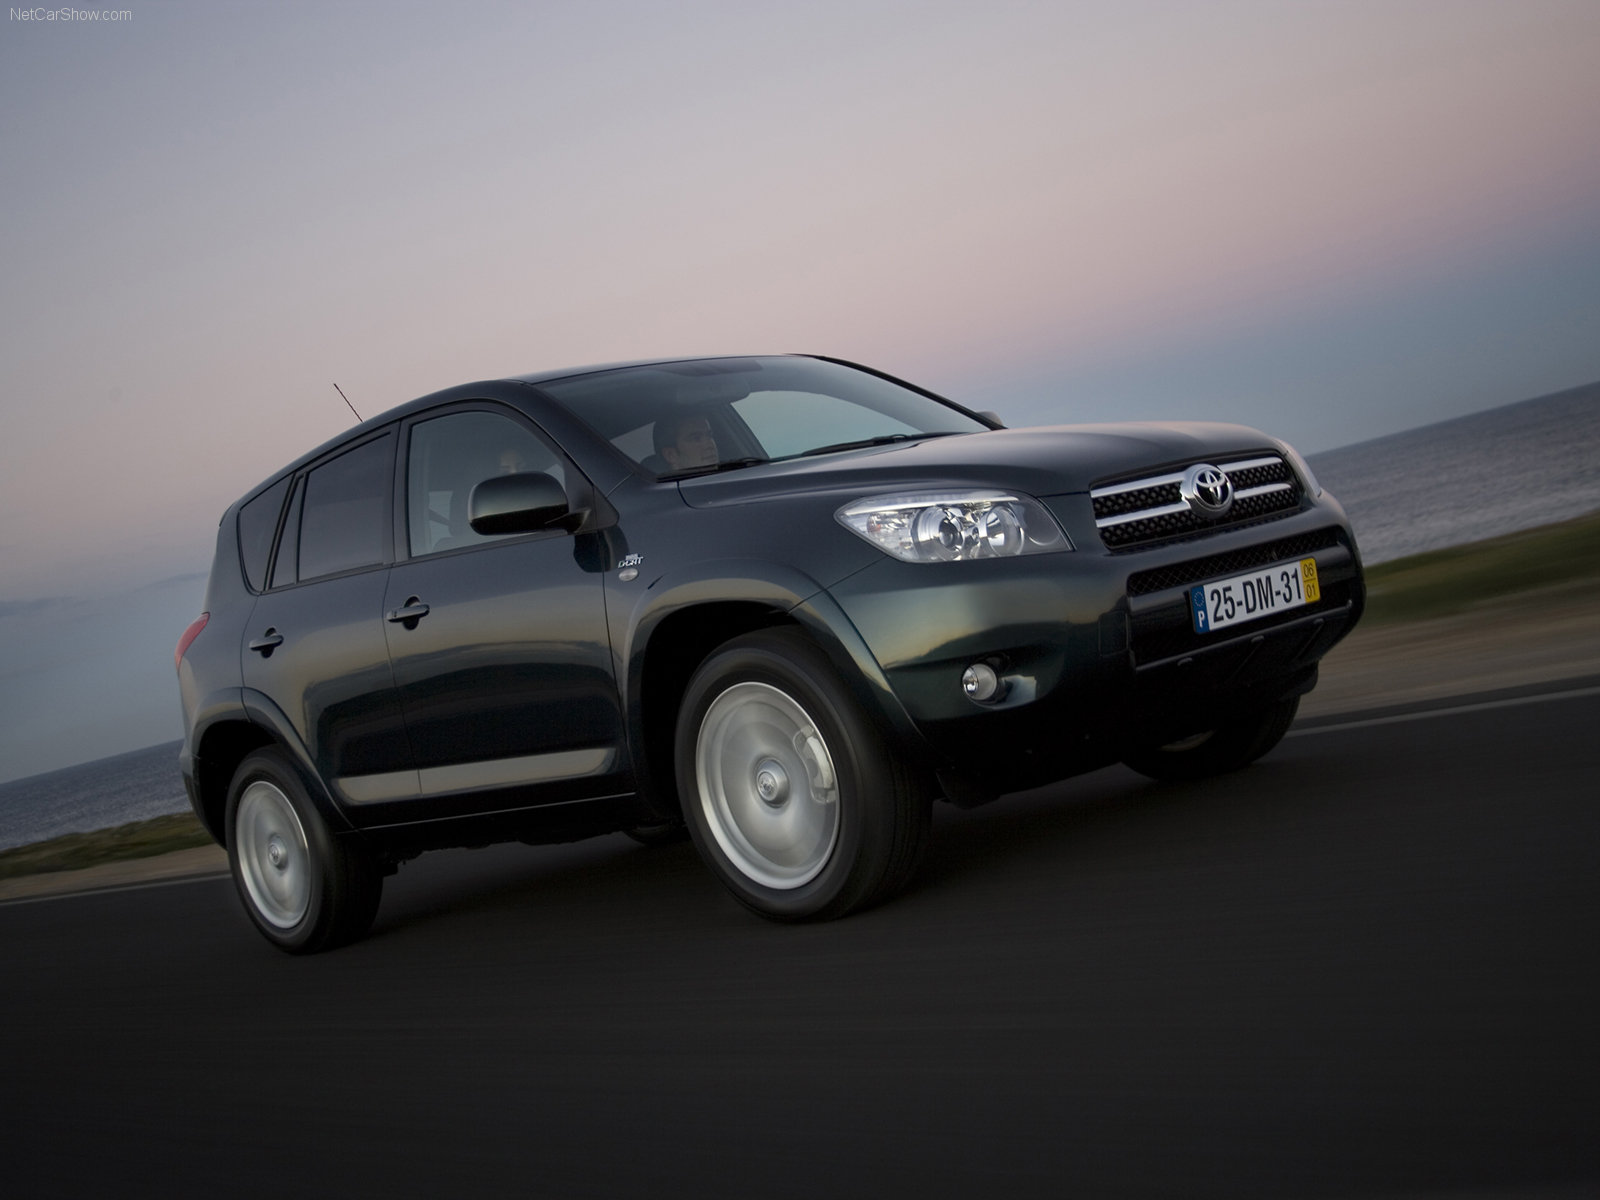 Toyota Rav 4 photo 32038